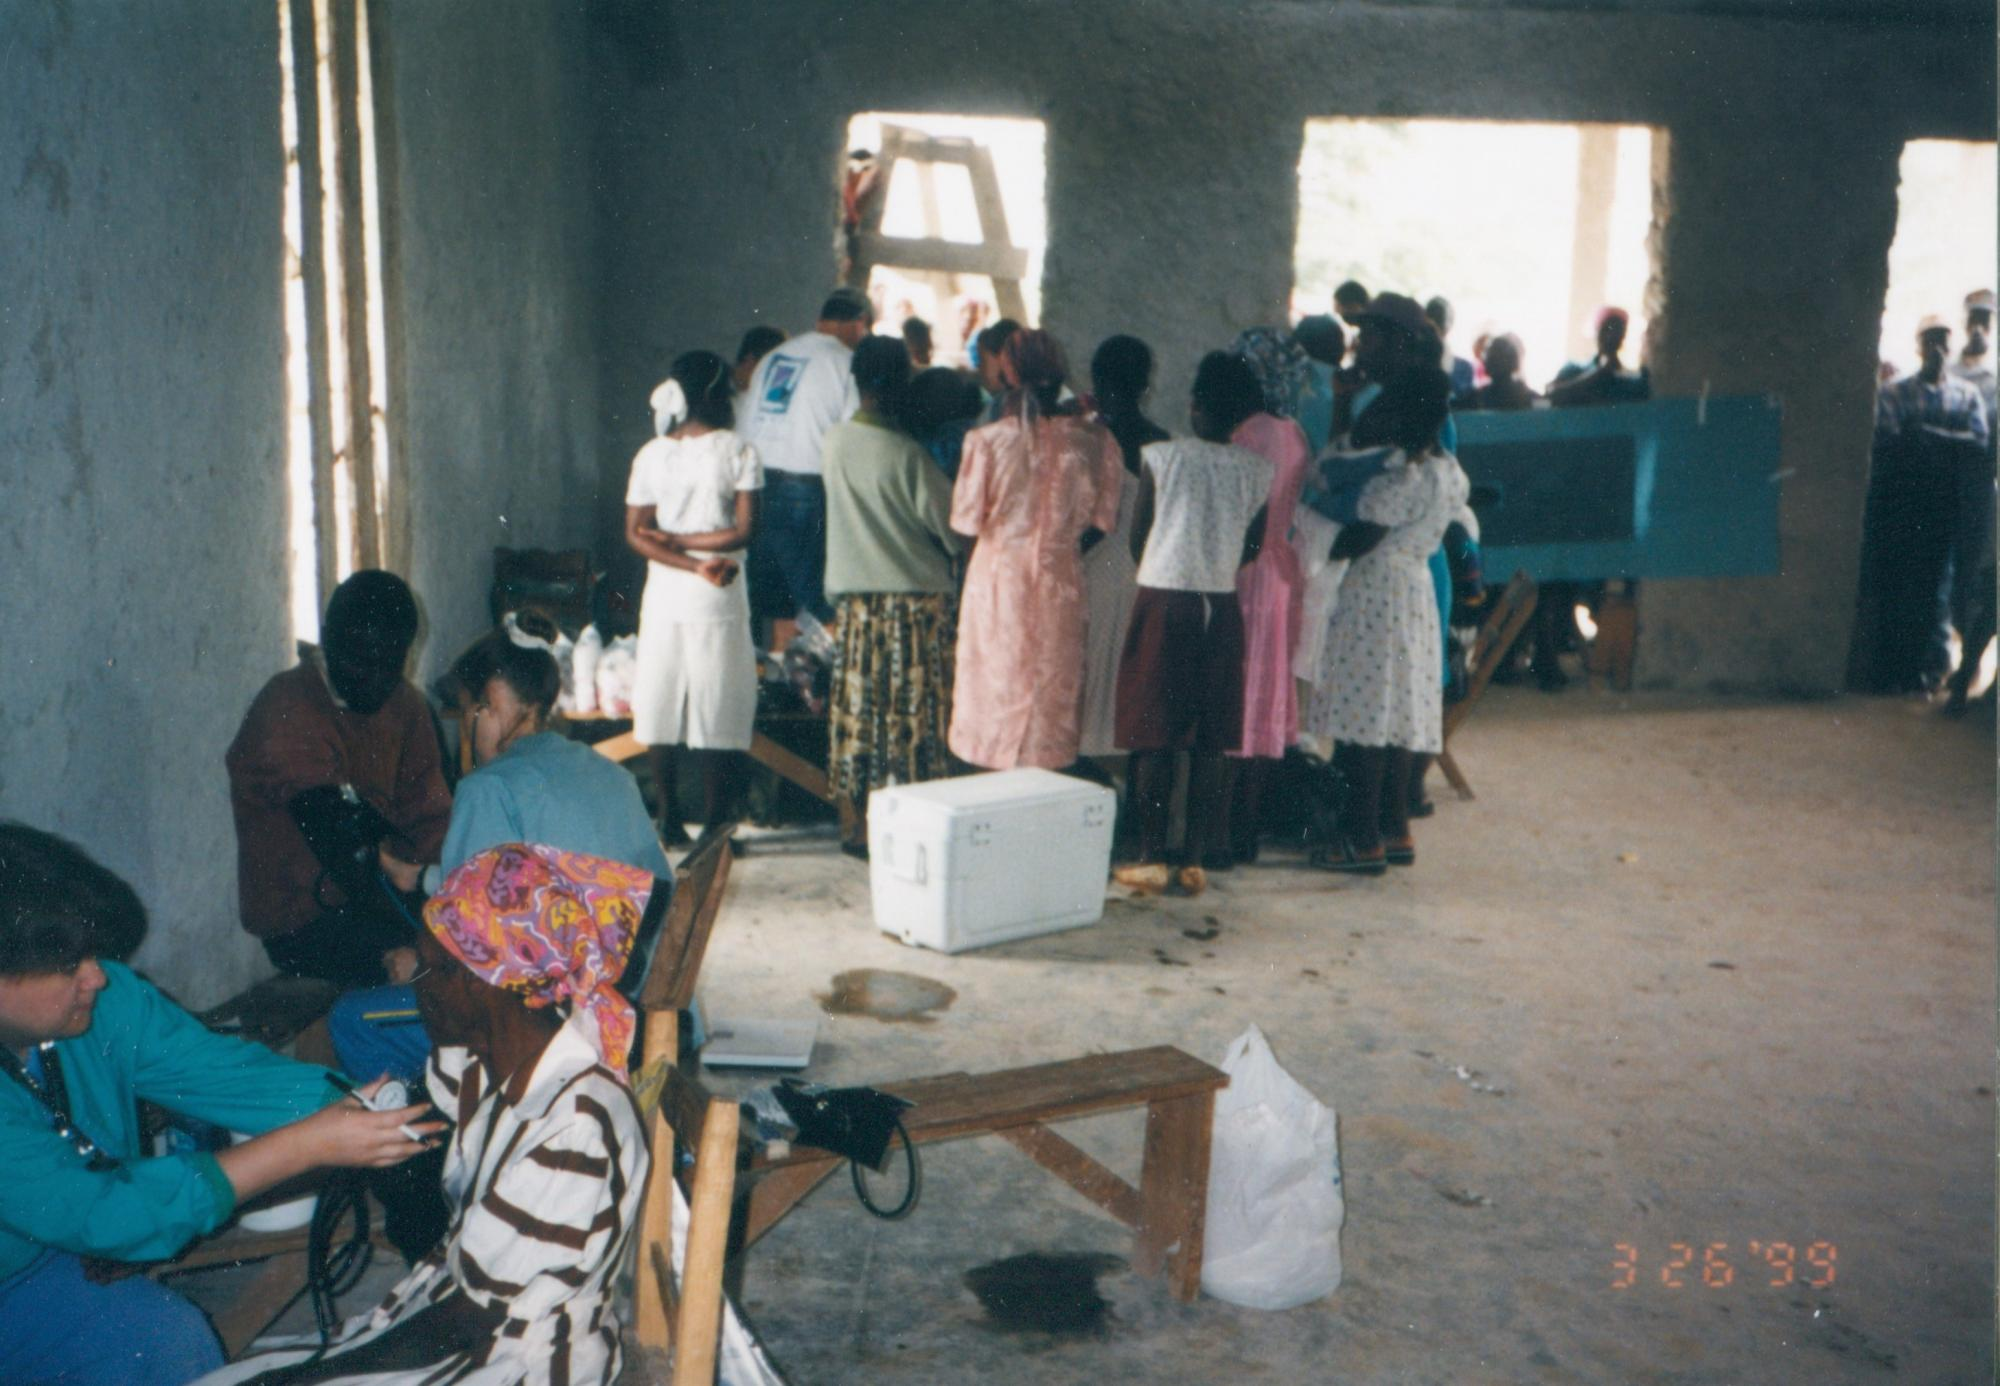 1999_Busy_Clinic_room_p_DrMM_image29.jpg